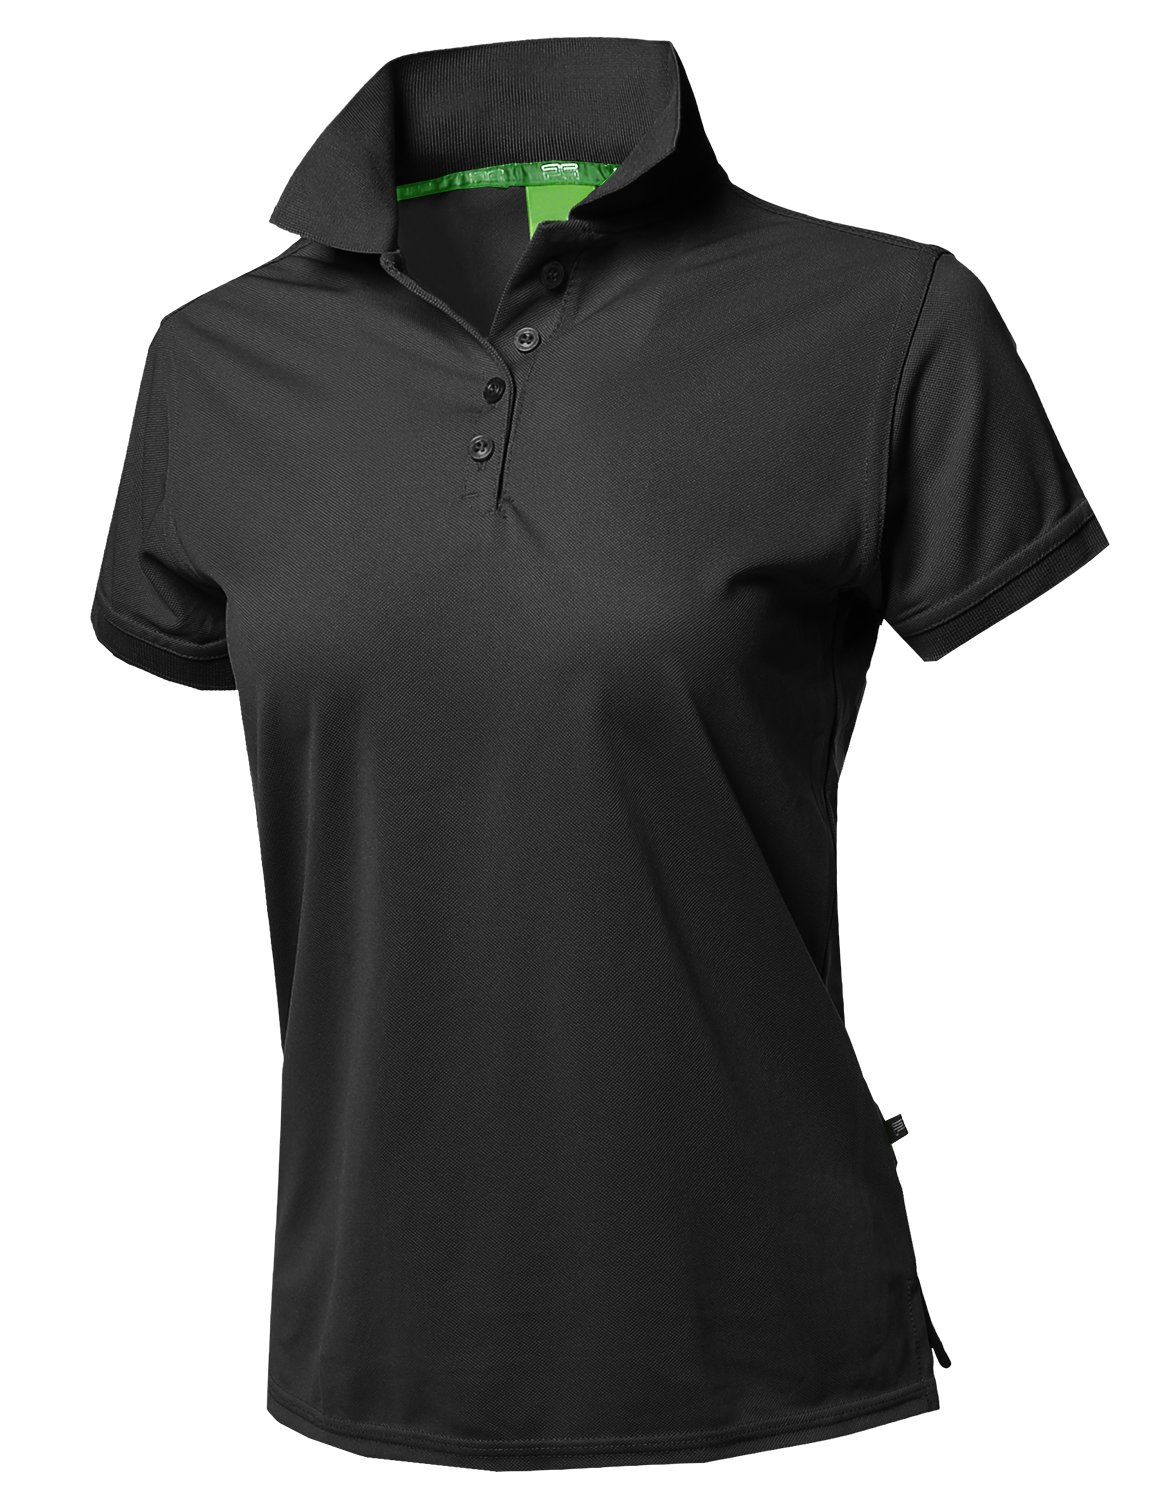 Awesome21 Junior Size Breathable Button Placket Short Sleeves Golf Polo Shirt Black 2XL